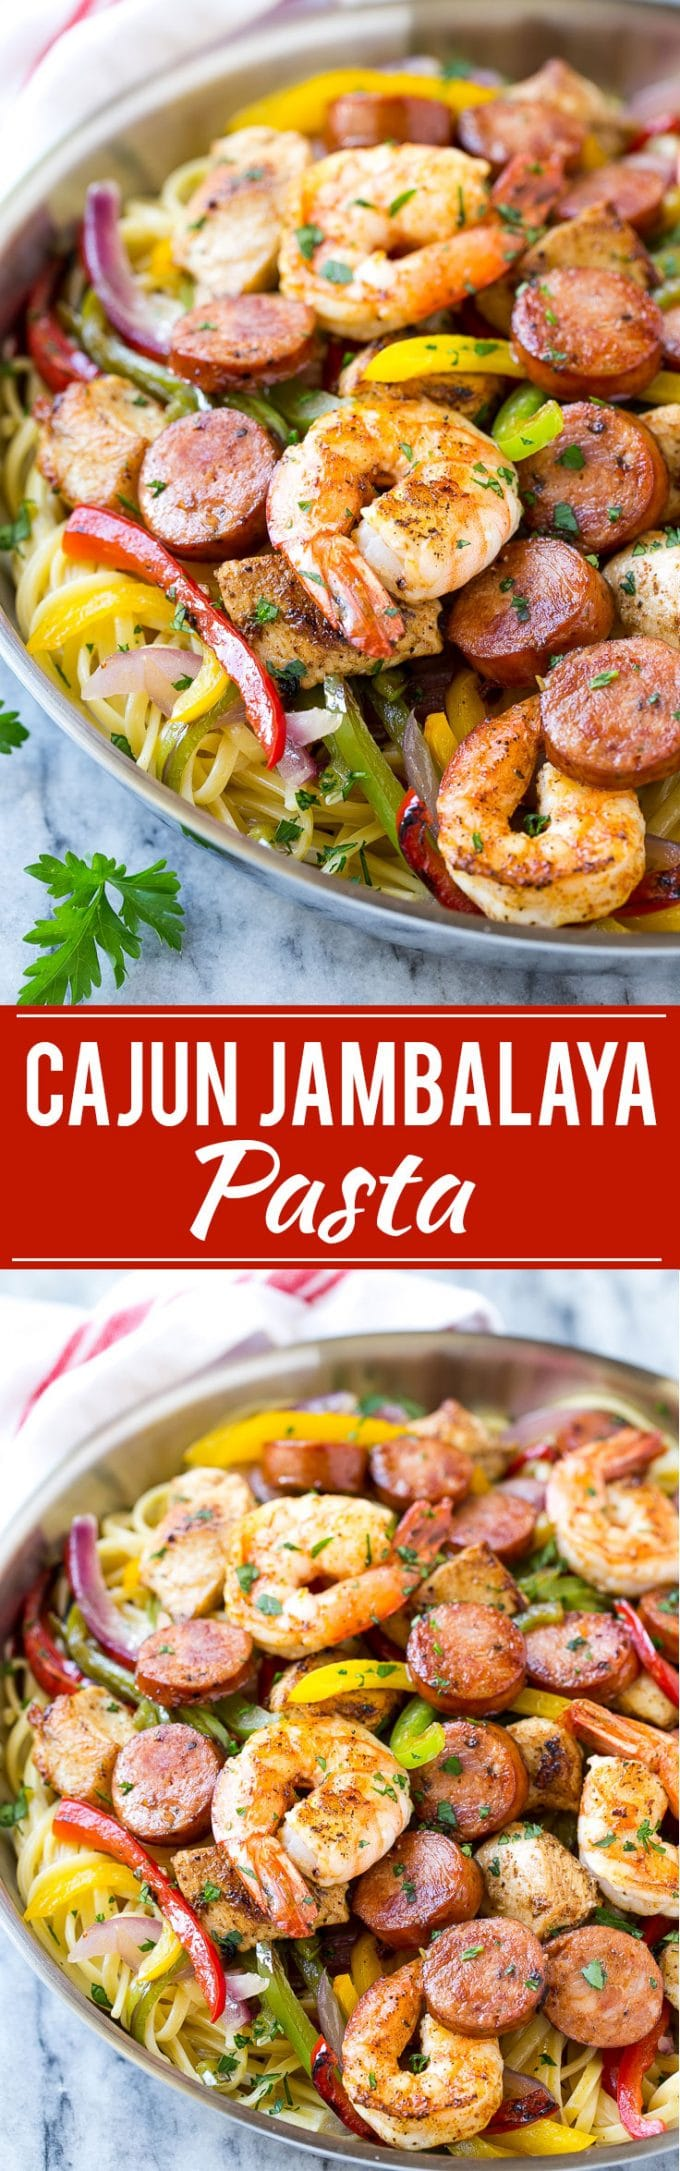 Cajun jambalaya pasta dinner at the zoo cajun jambalaya pasta recipe cajun pasta easy jambalaya recipe easy jambalaya best forumfinder Image collections